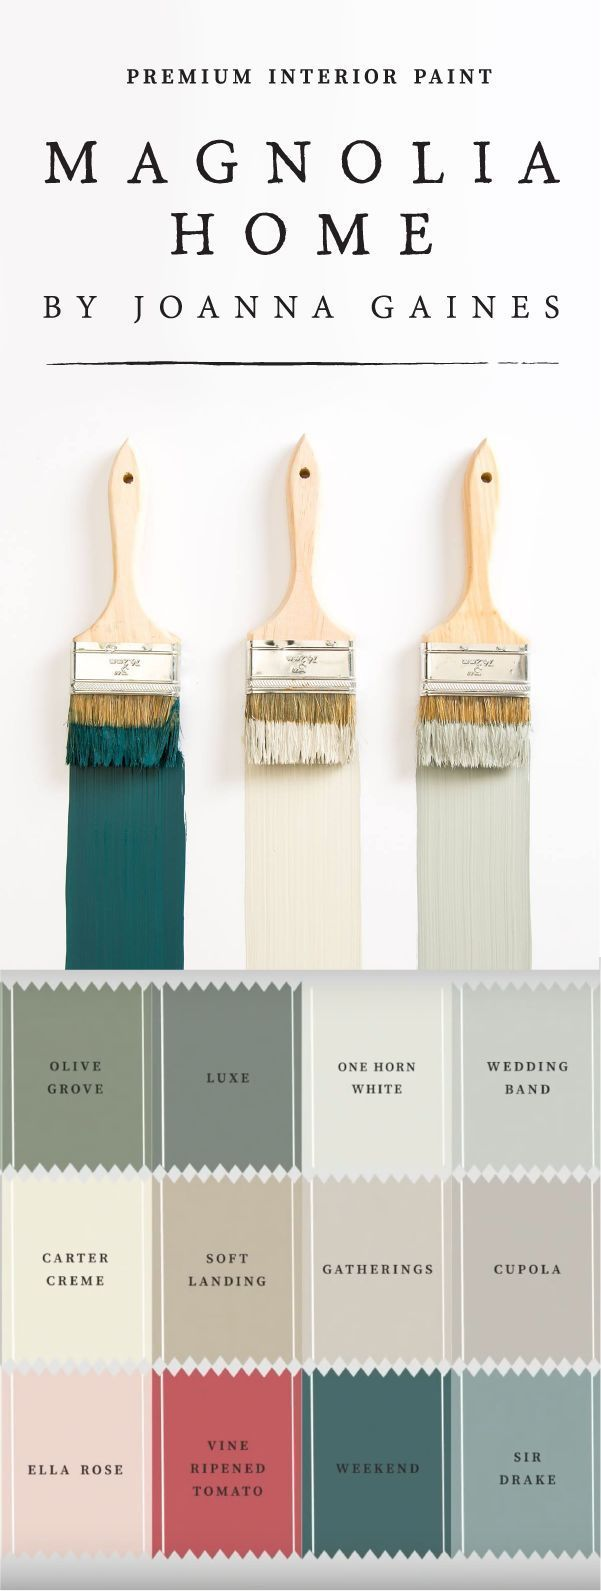 The Magnolia Home Paint collection from designer Joanna Gaines and KILZ is full …